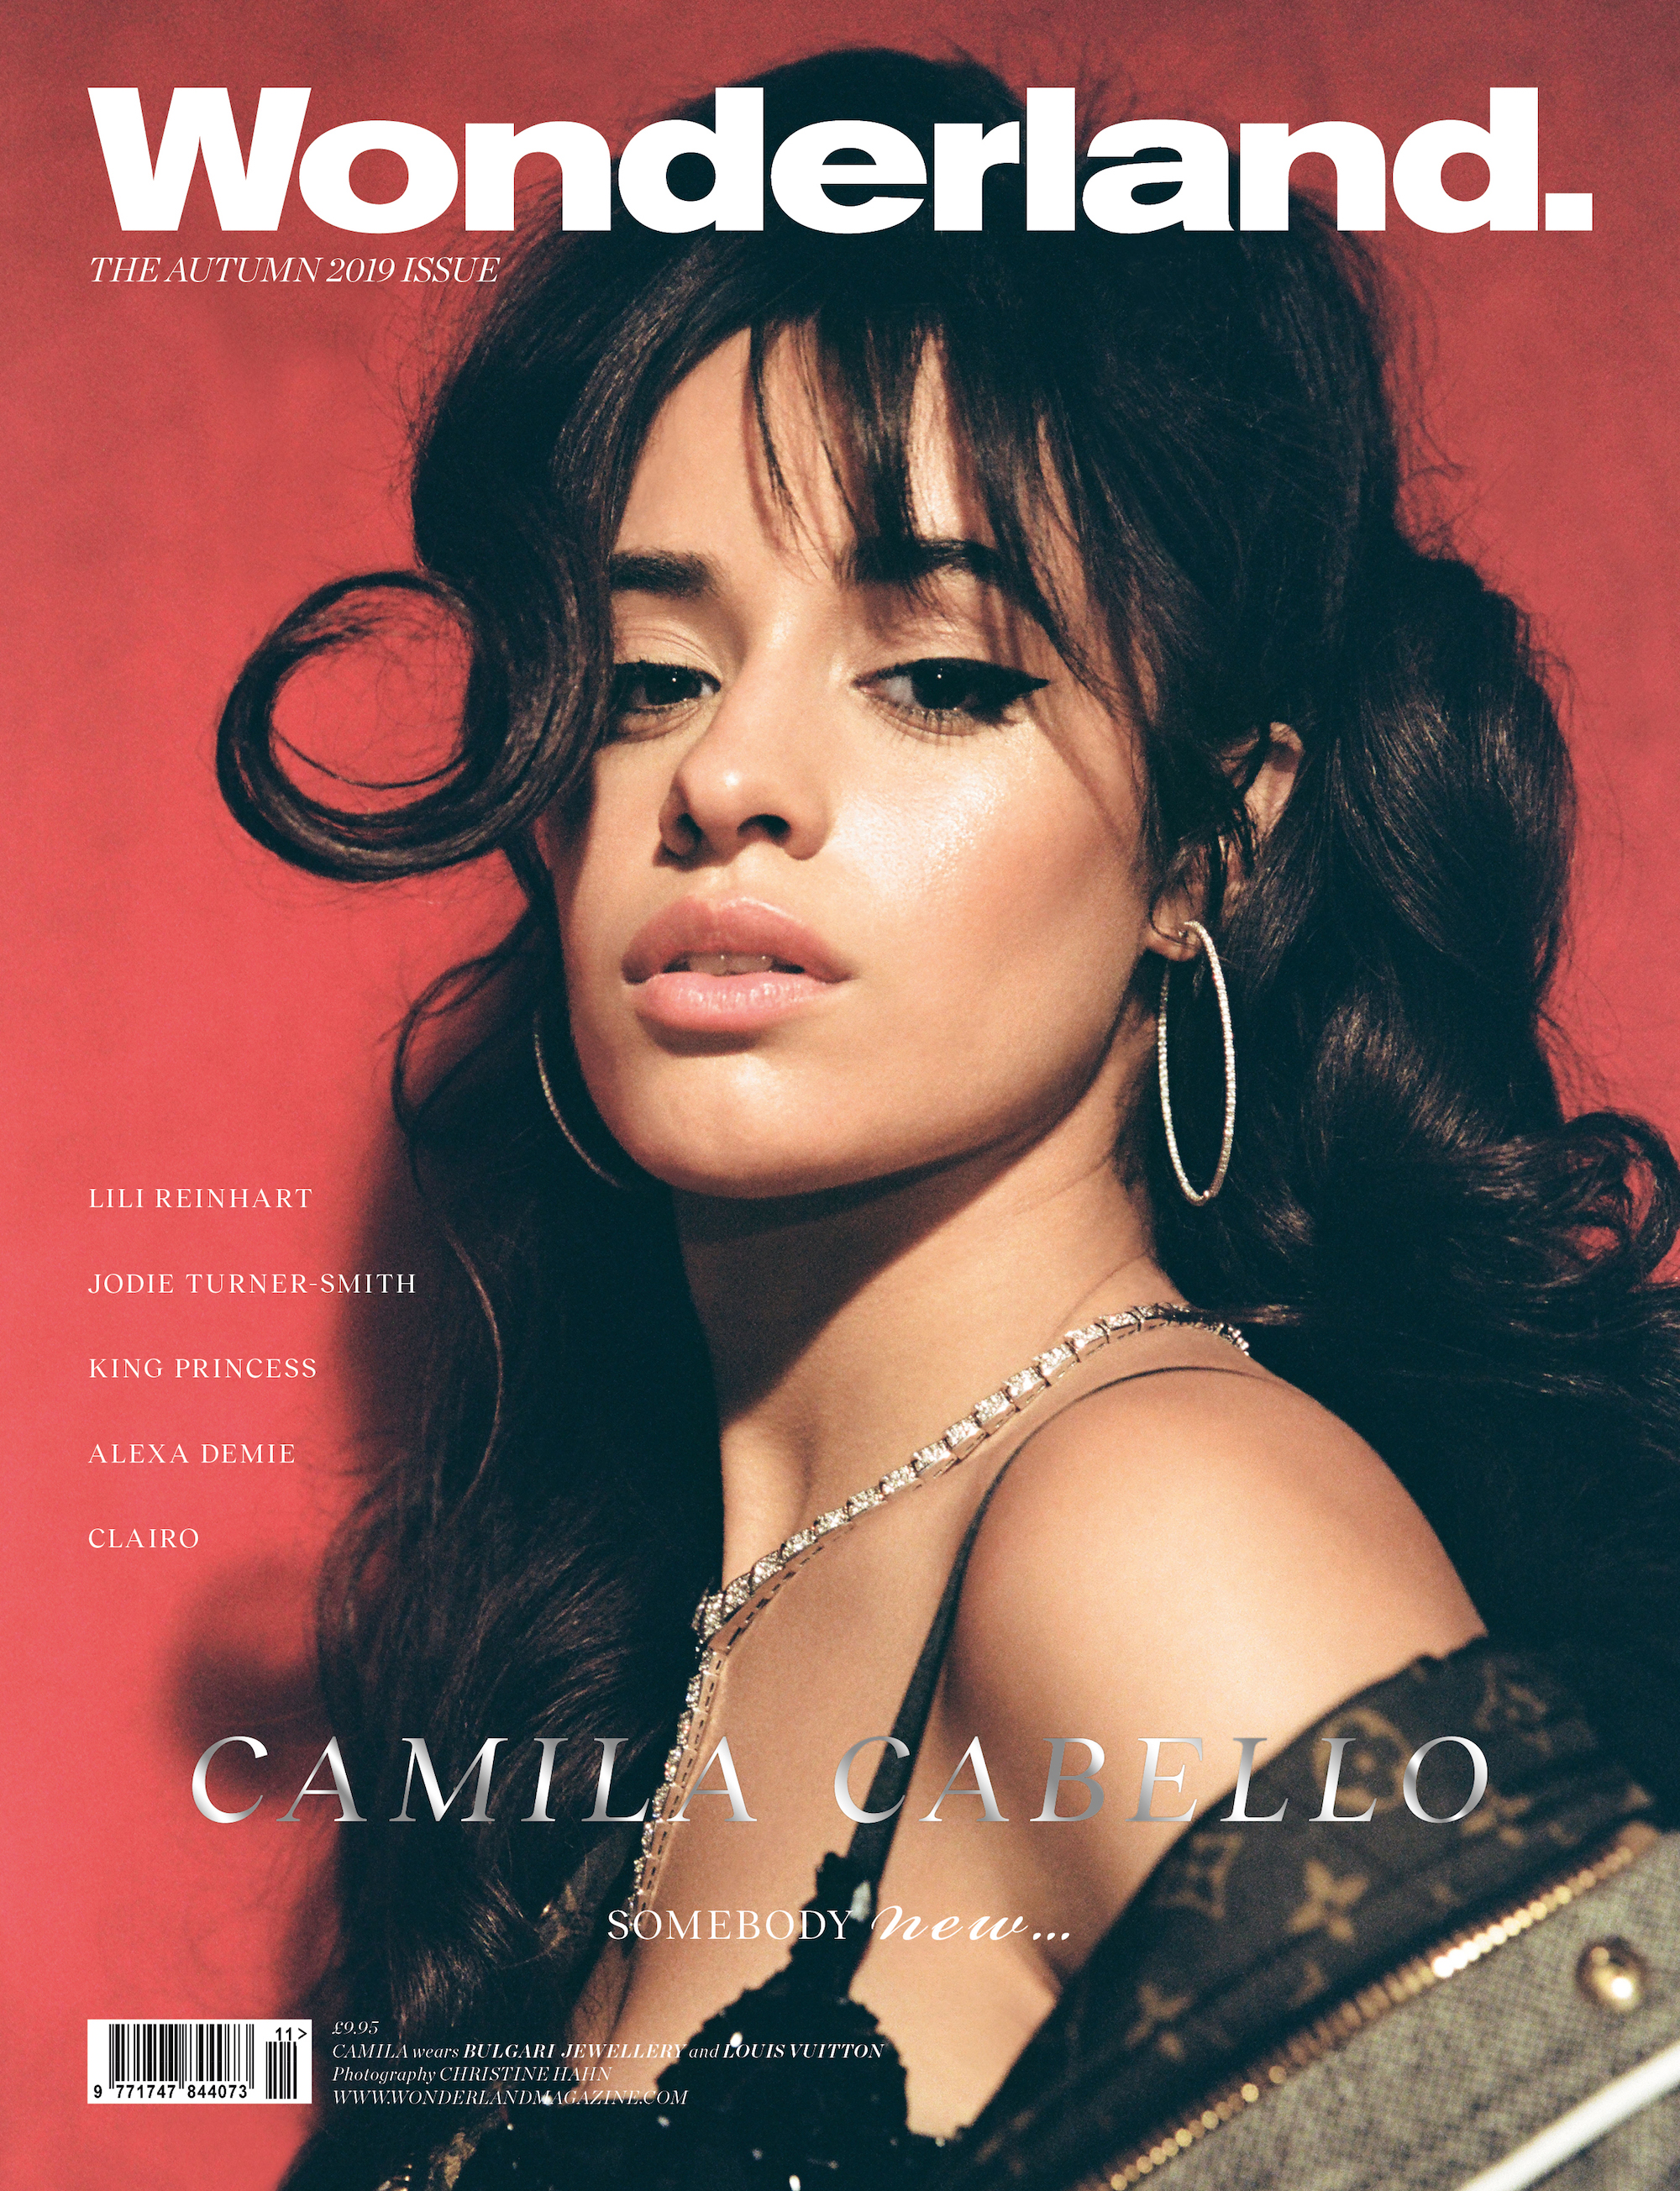 Camila Cabello cover of Wonderland Autumn 19 issue